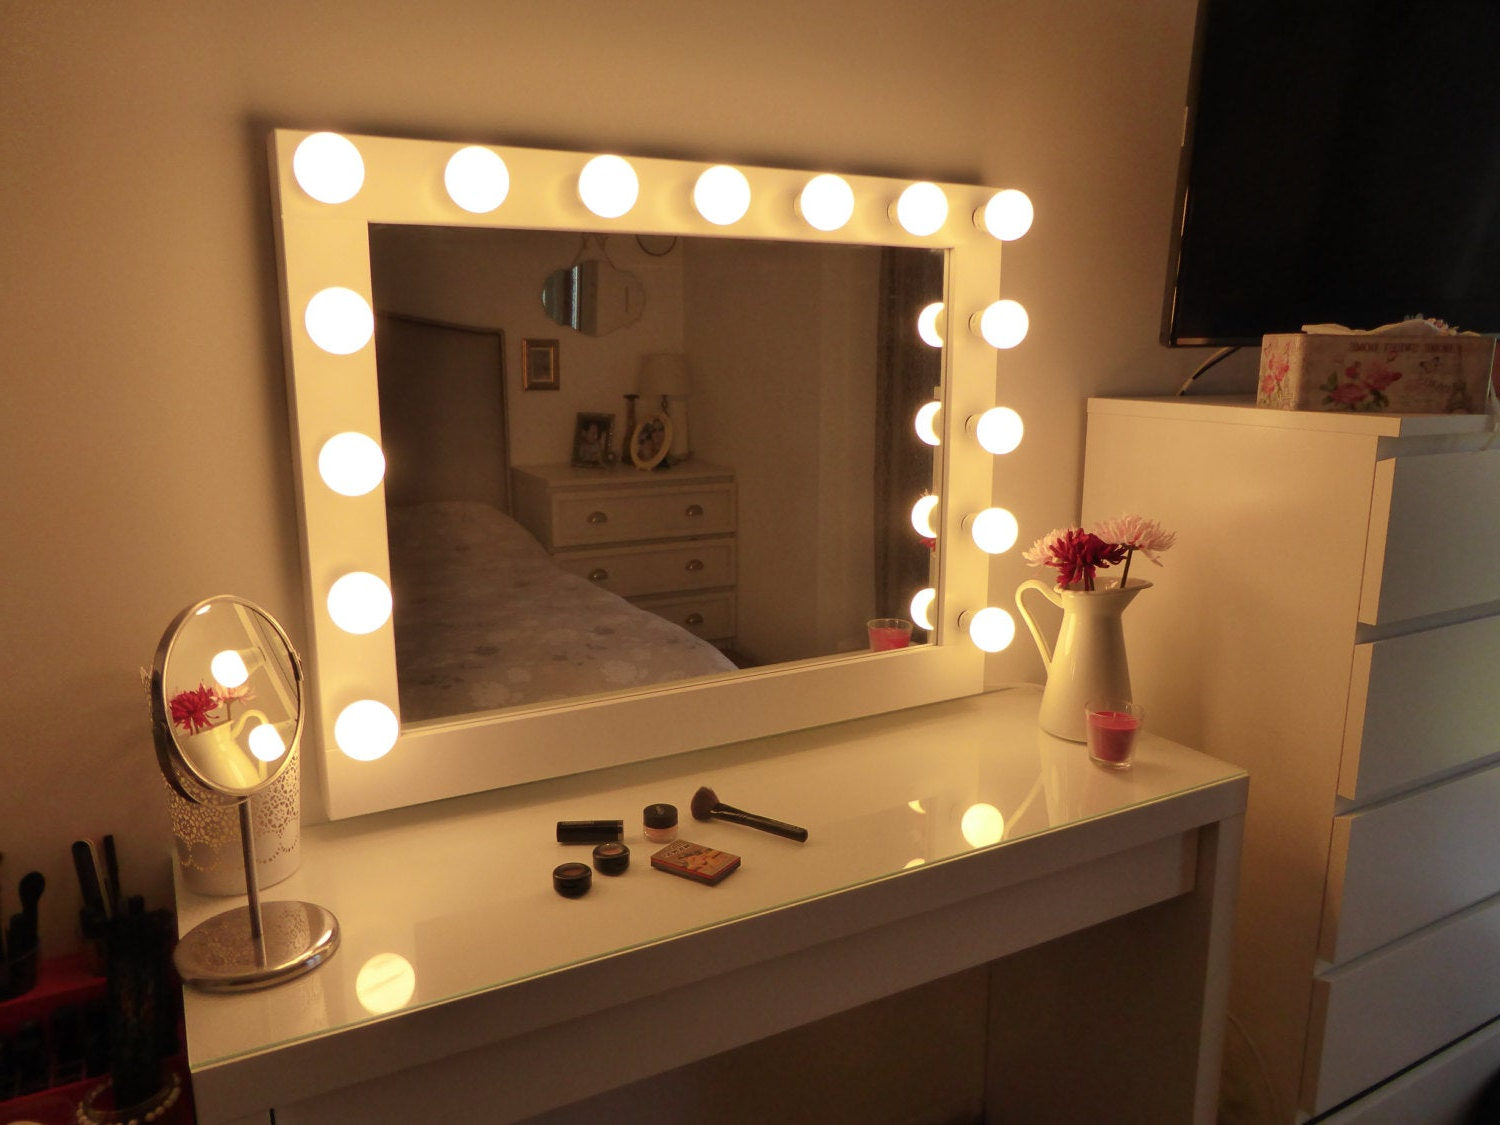 Most Popular Hollywood Lighted Vanity Mirror Large Makeup Mirror With Lights Wall Hanging/free Standing Perfect For Ikea Malm Vanity Bulbs Not Included Regarding Vanity Mirrors (View 6 of 20)